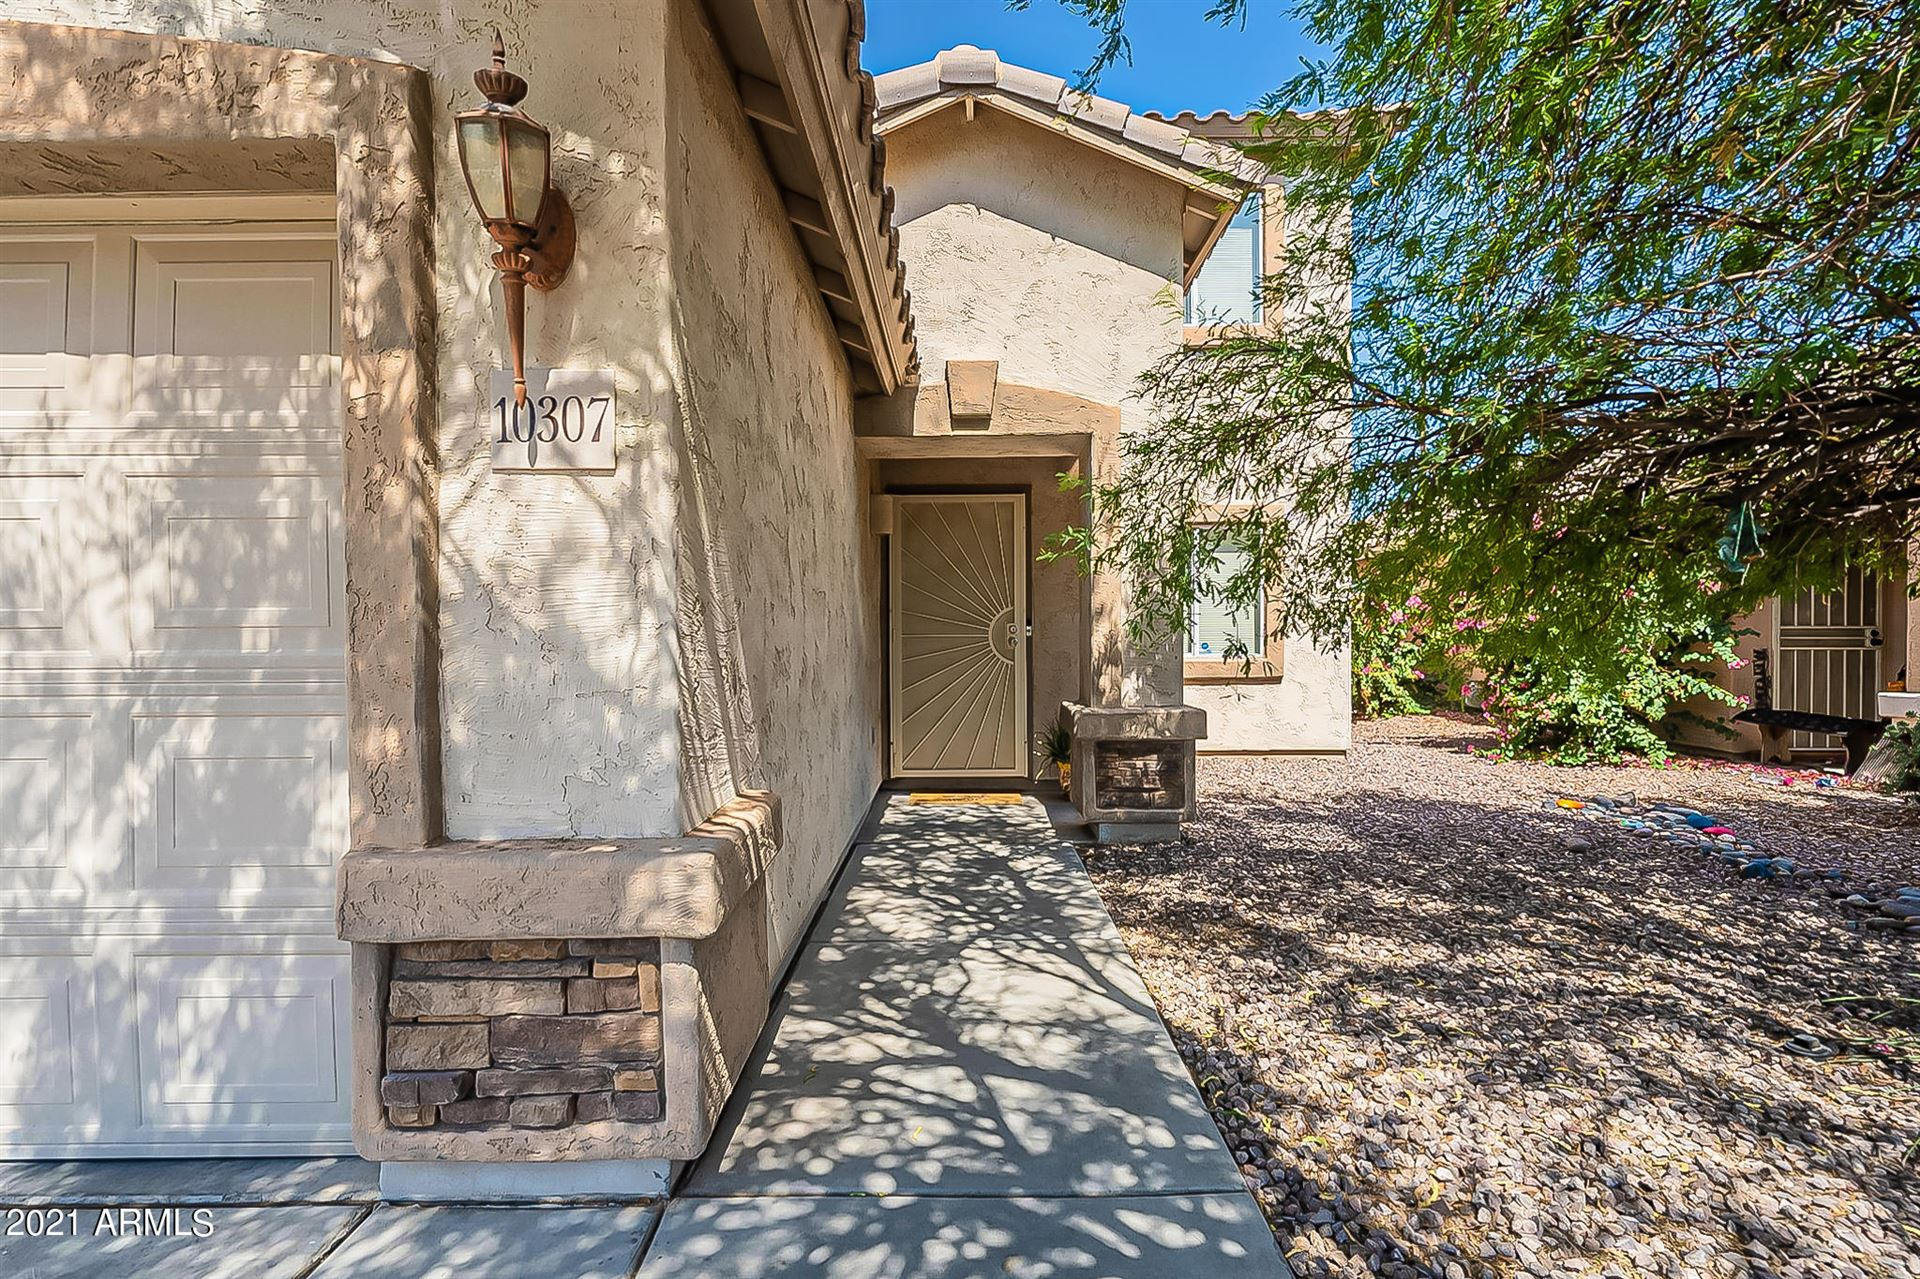 Photo of 10307 N 115TH Drive, Youngtown, AZ 85363 (MLS # 6257904)